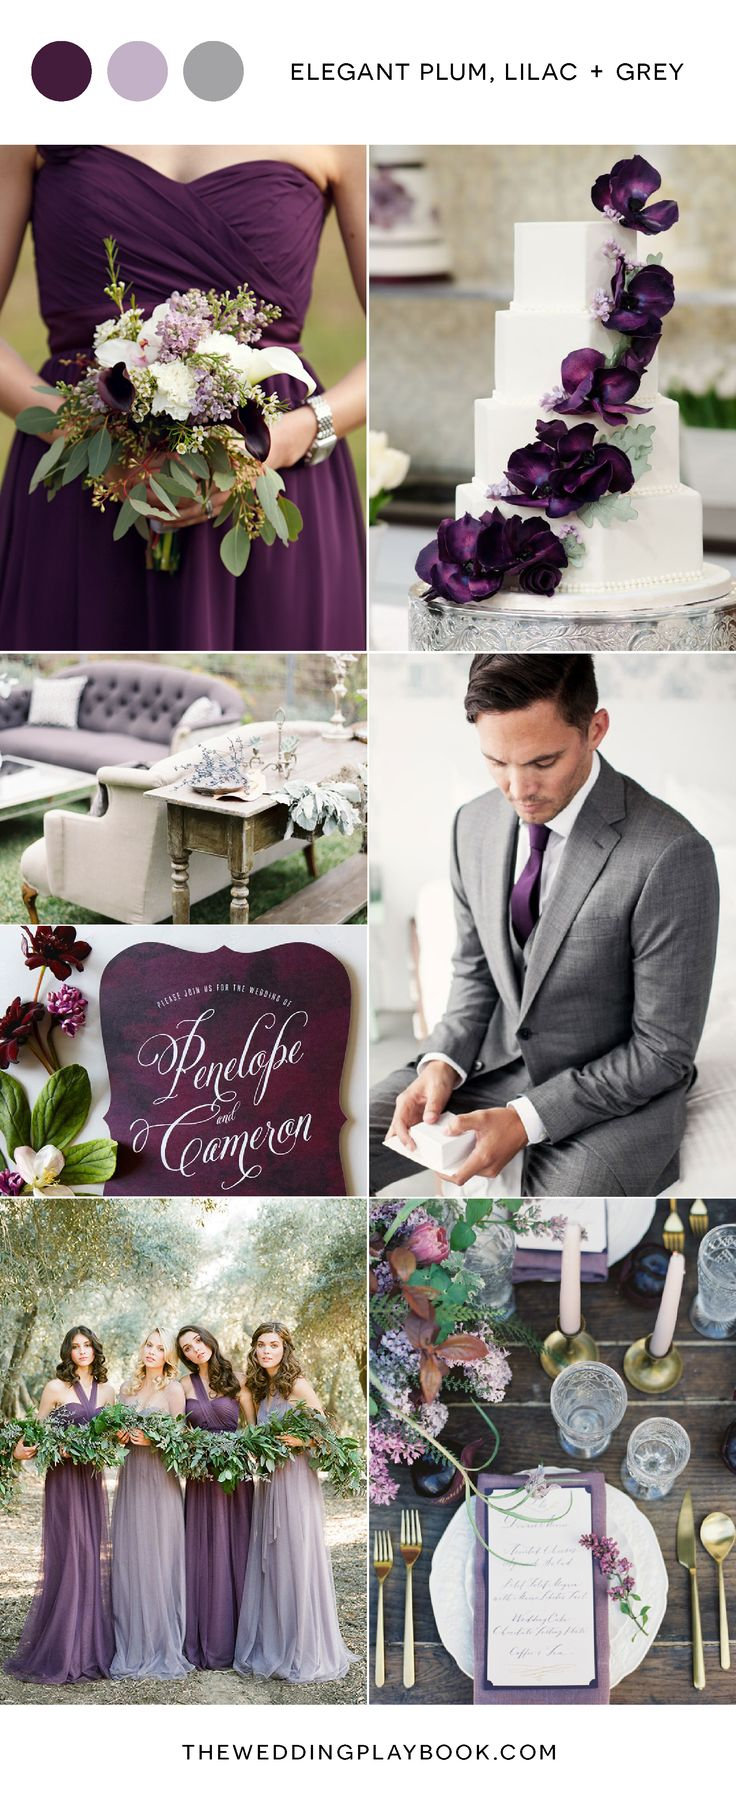 25 Best Ideas About Plum Wedding On Pinterest